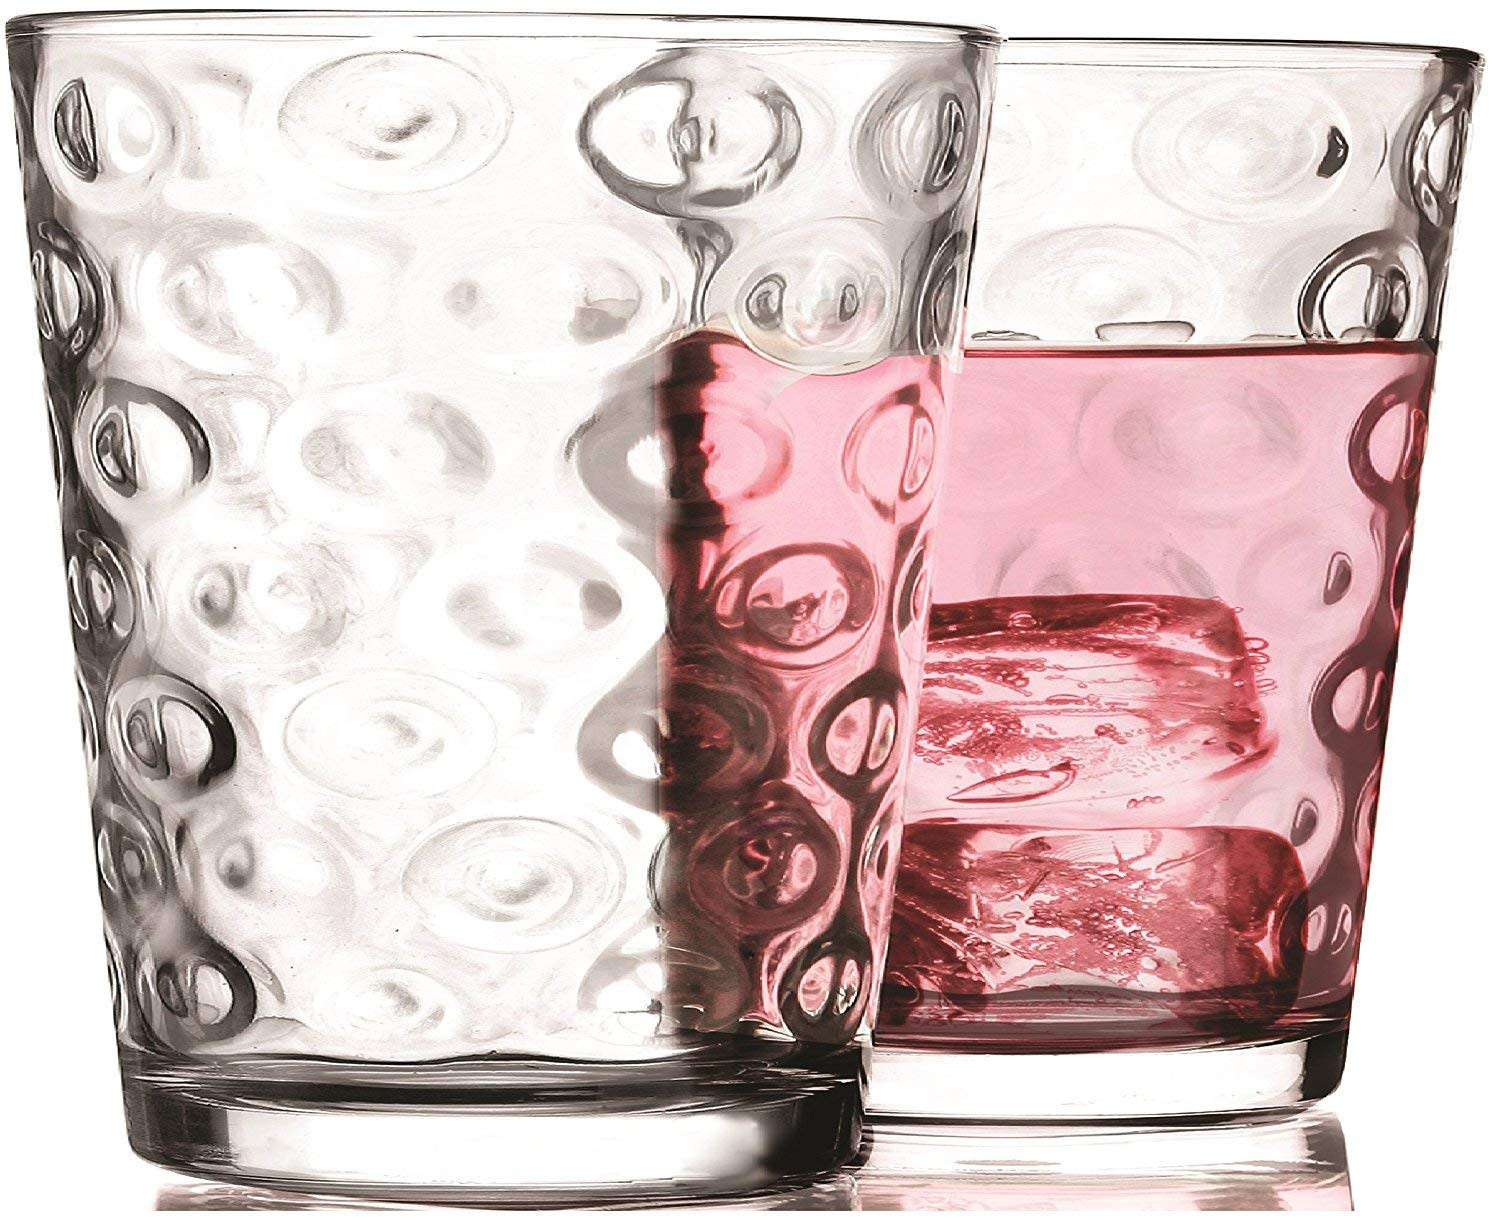 recycled glass jug vase of amazon com circleware 44516 circles drinking glassware products with regard to amazon com circleware 44516 circles drinking glassware products clear mixed drinkware sets